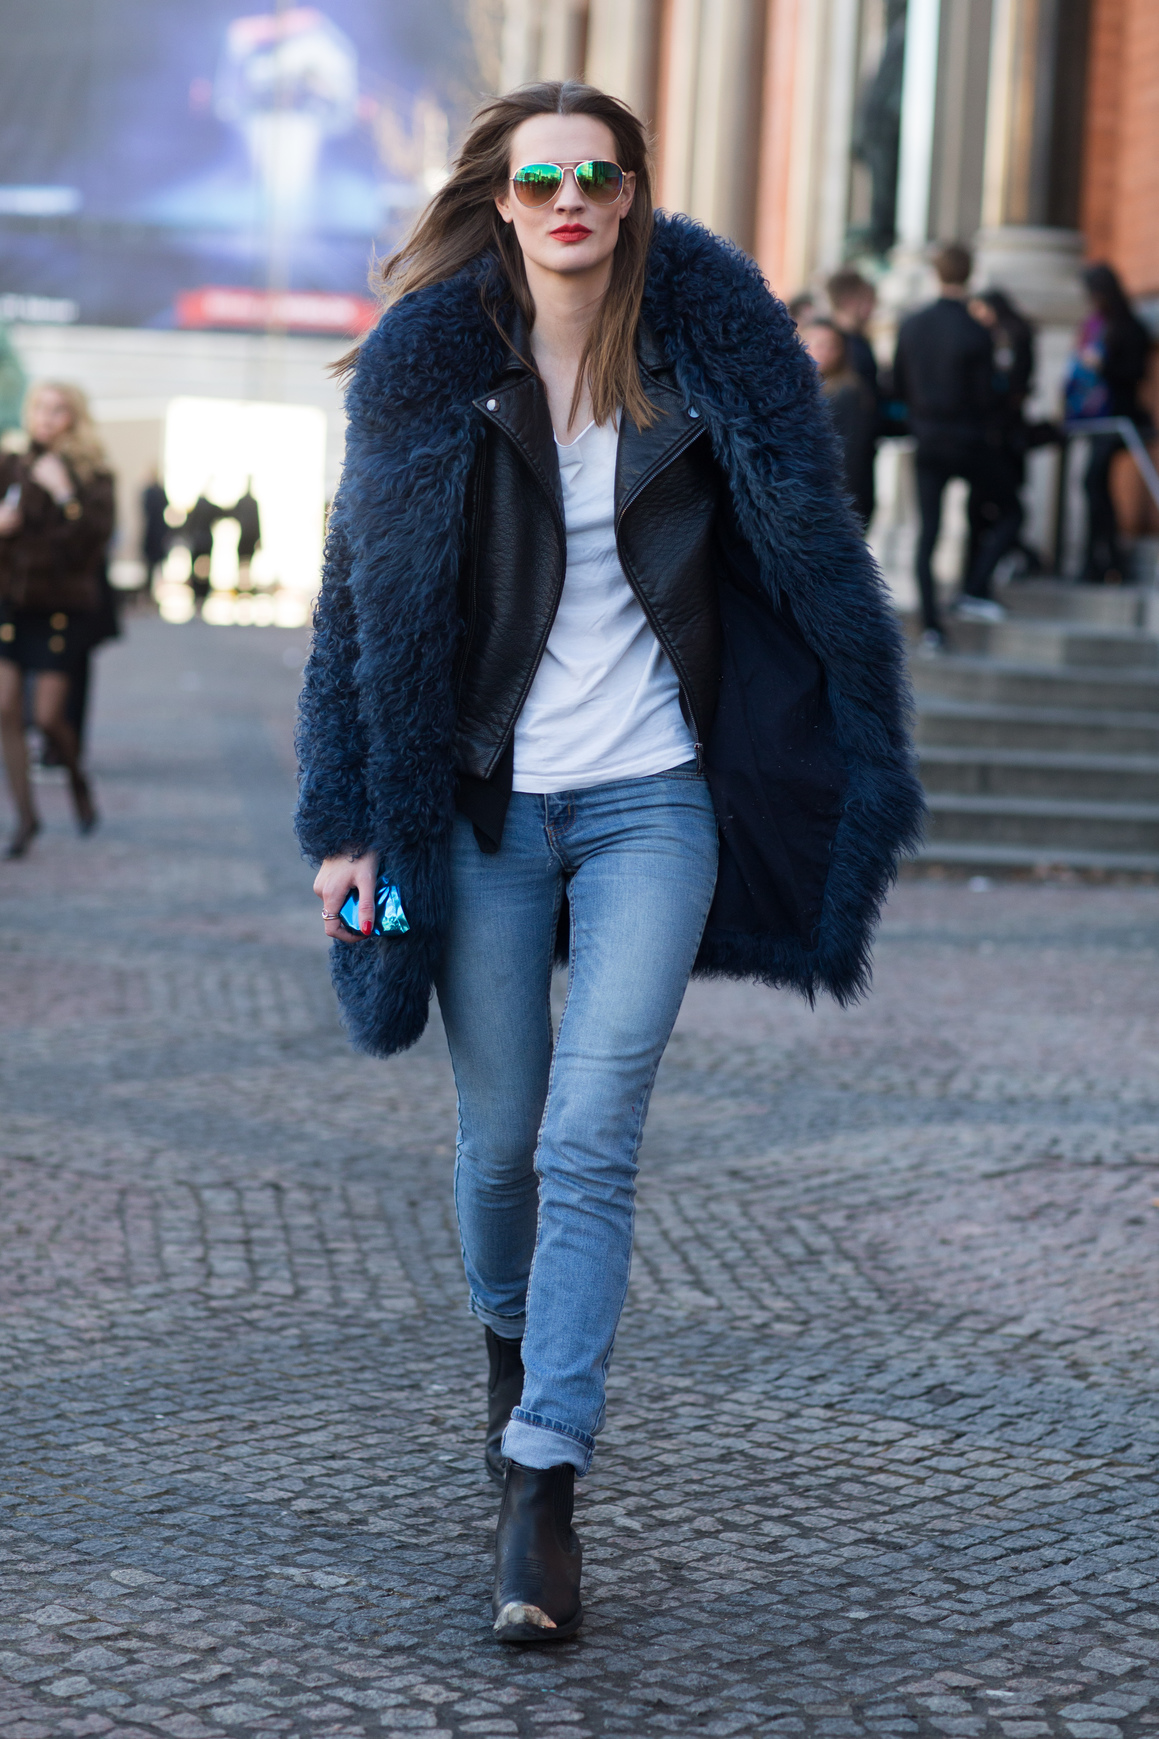 Street Style during Copenhagen Fashion Week AW 2016